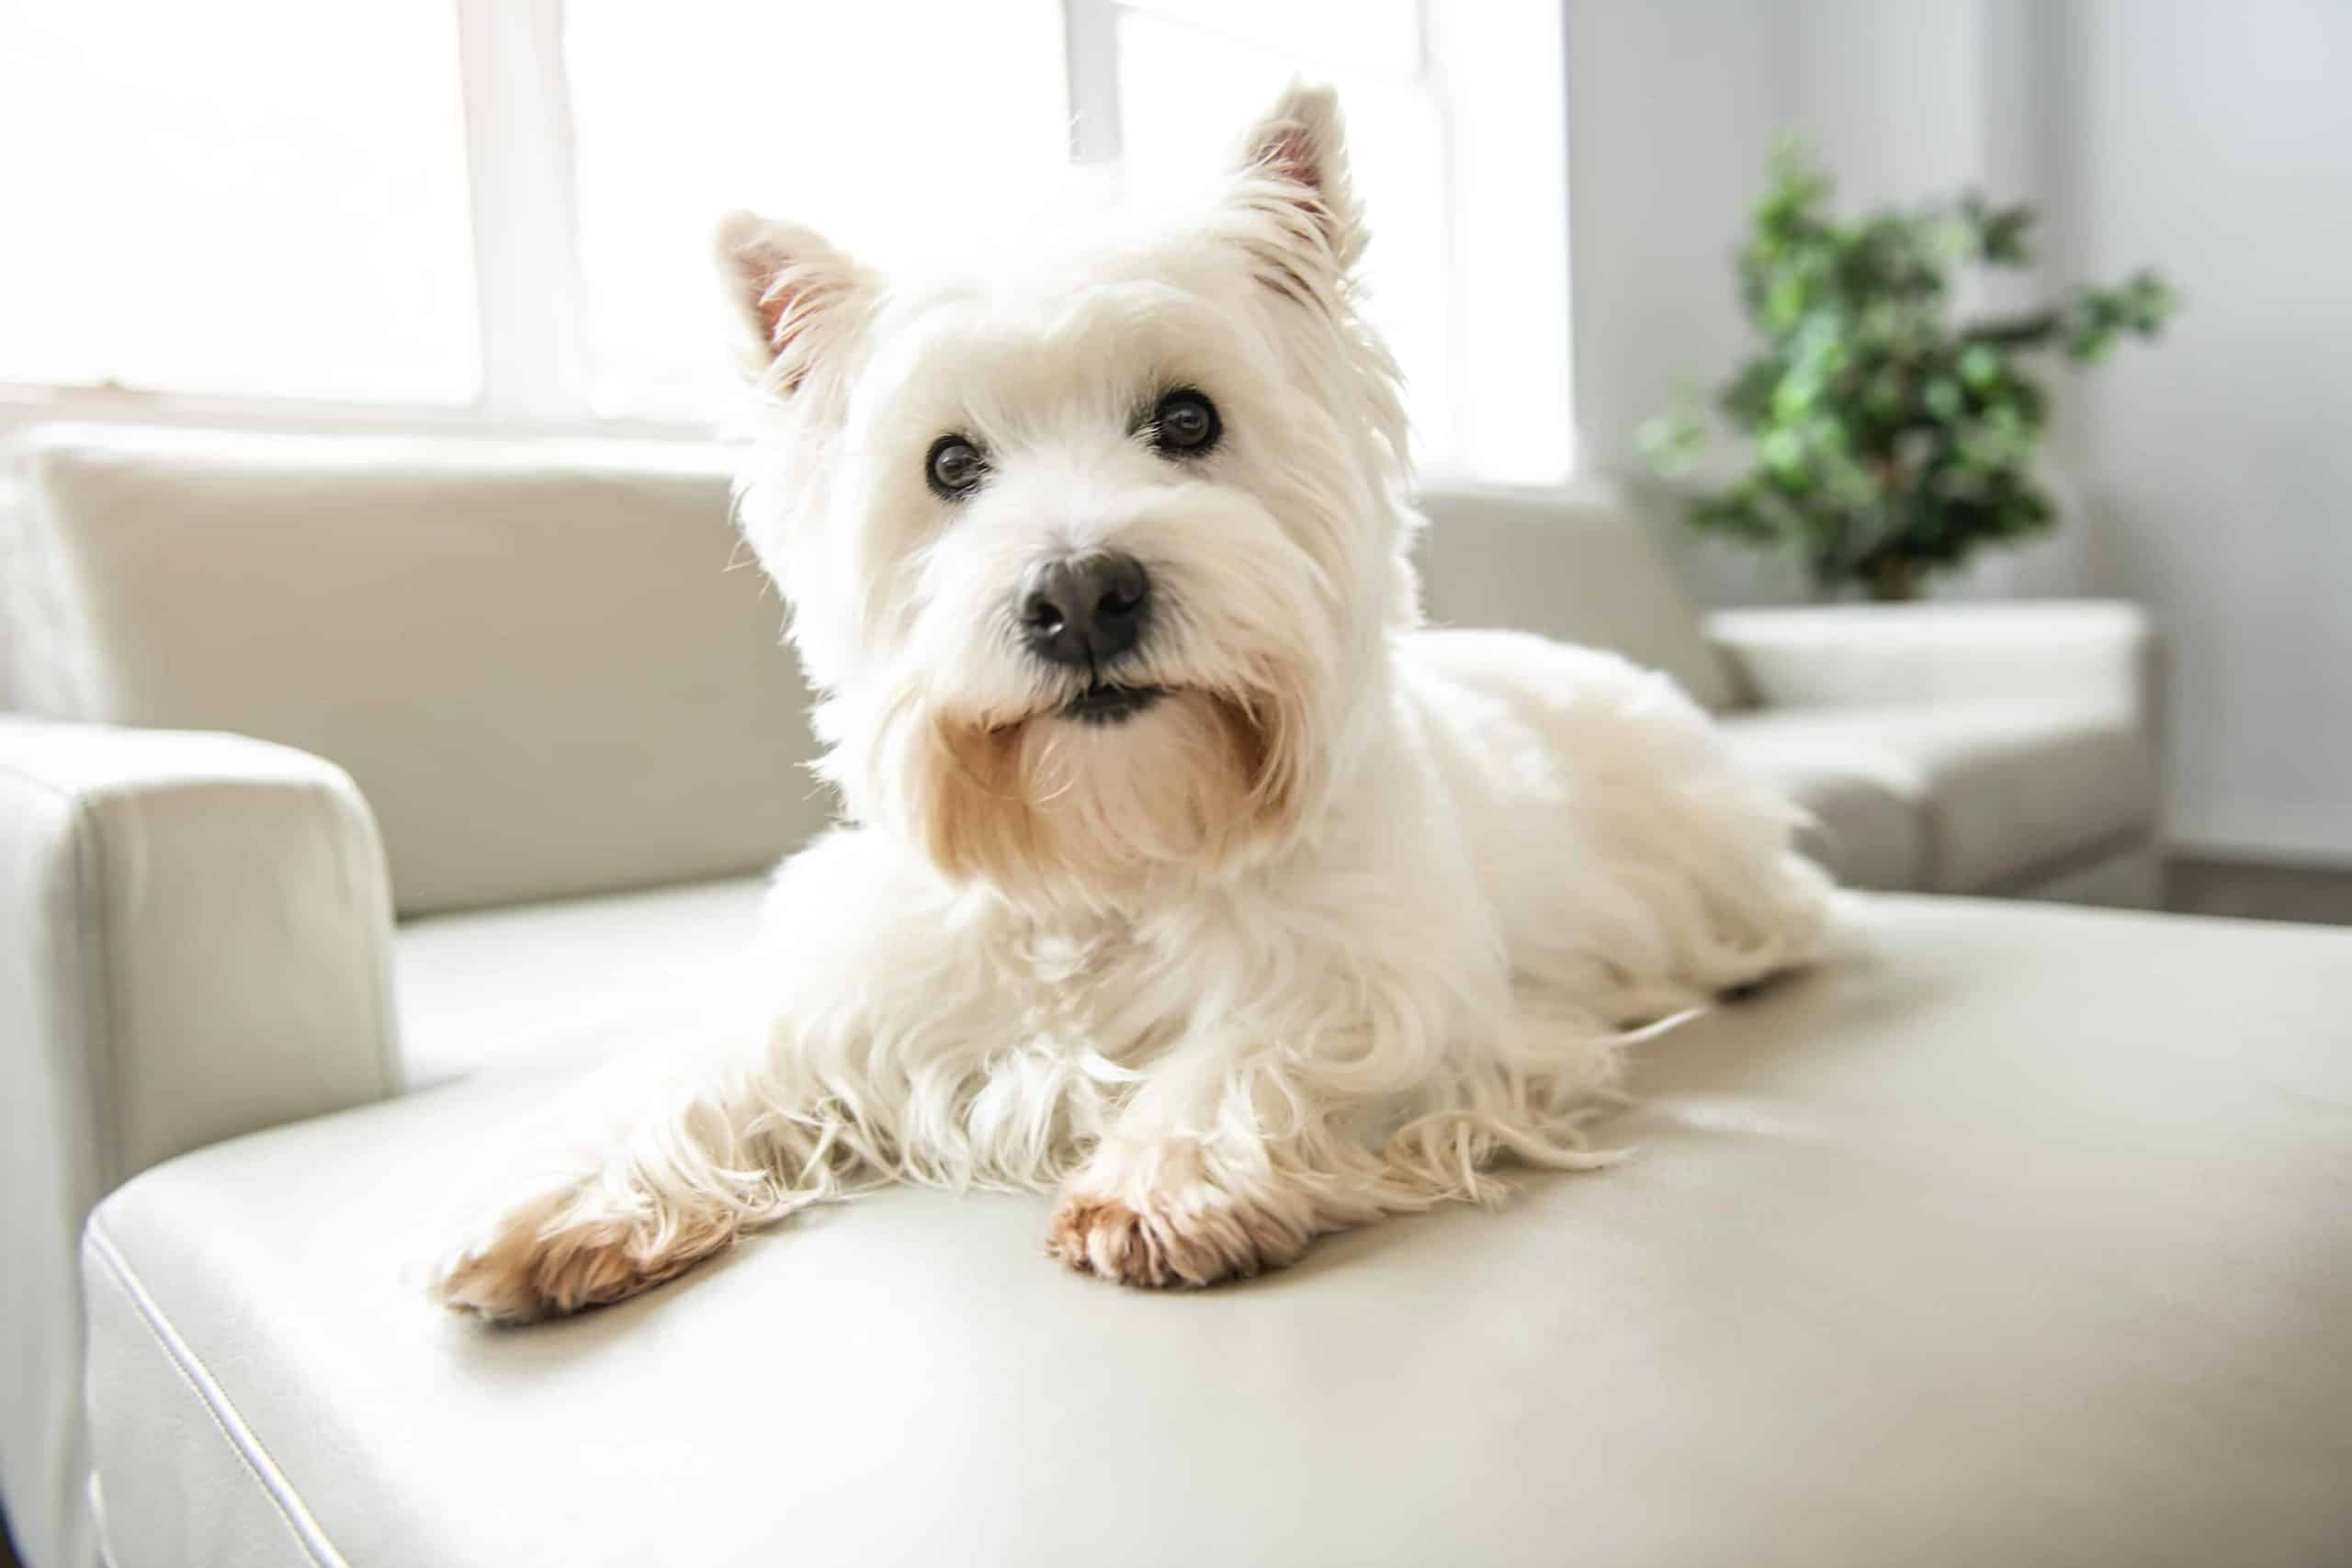 Happy Westie lays on couch. Certain activities and products can contribute to indoor pollution, which can harm your health and the health of your dog.